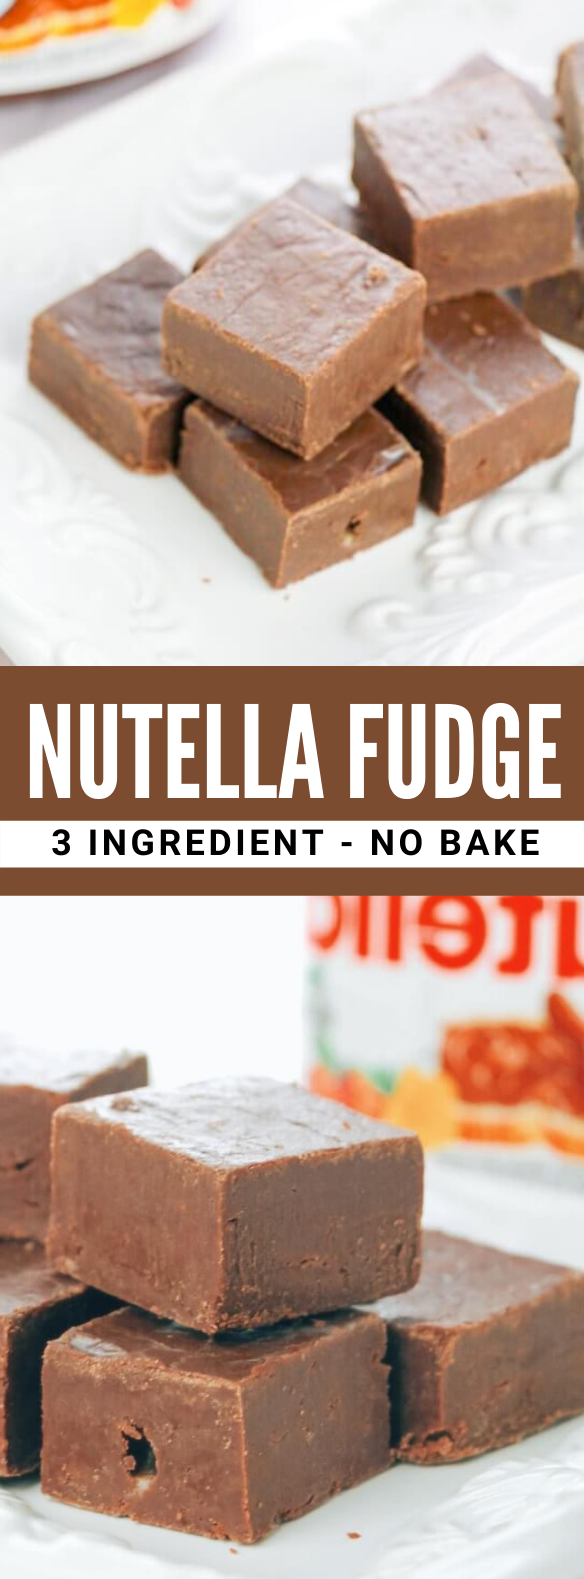 Nutella Fudge - Only 3 Ingredients! #desserts #sweets